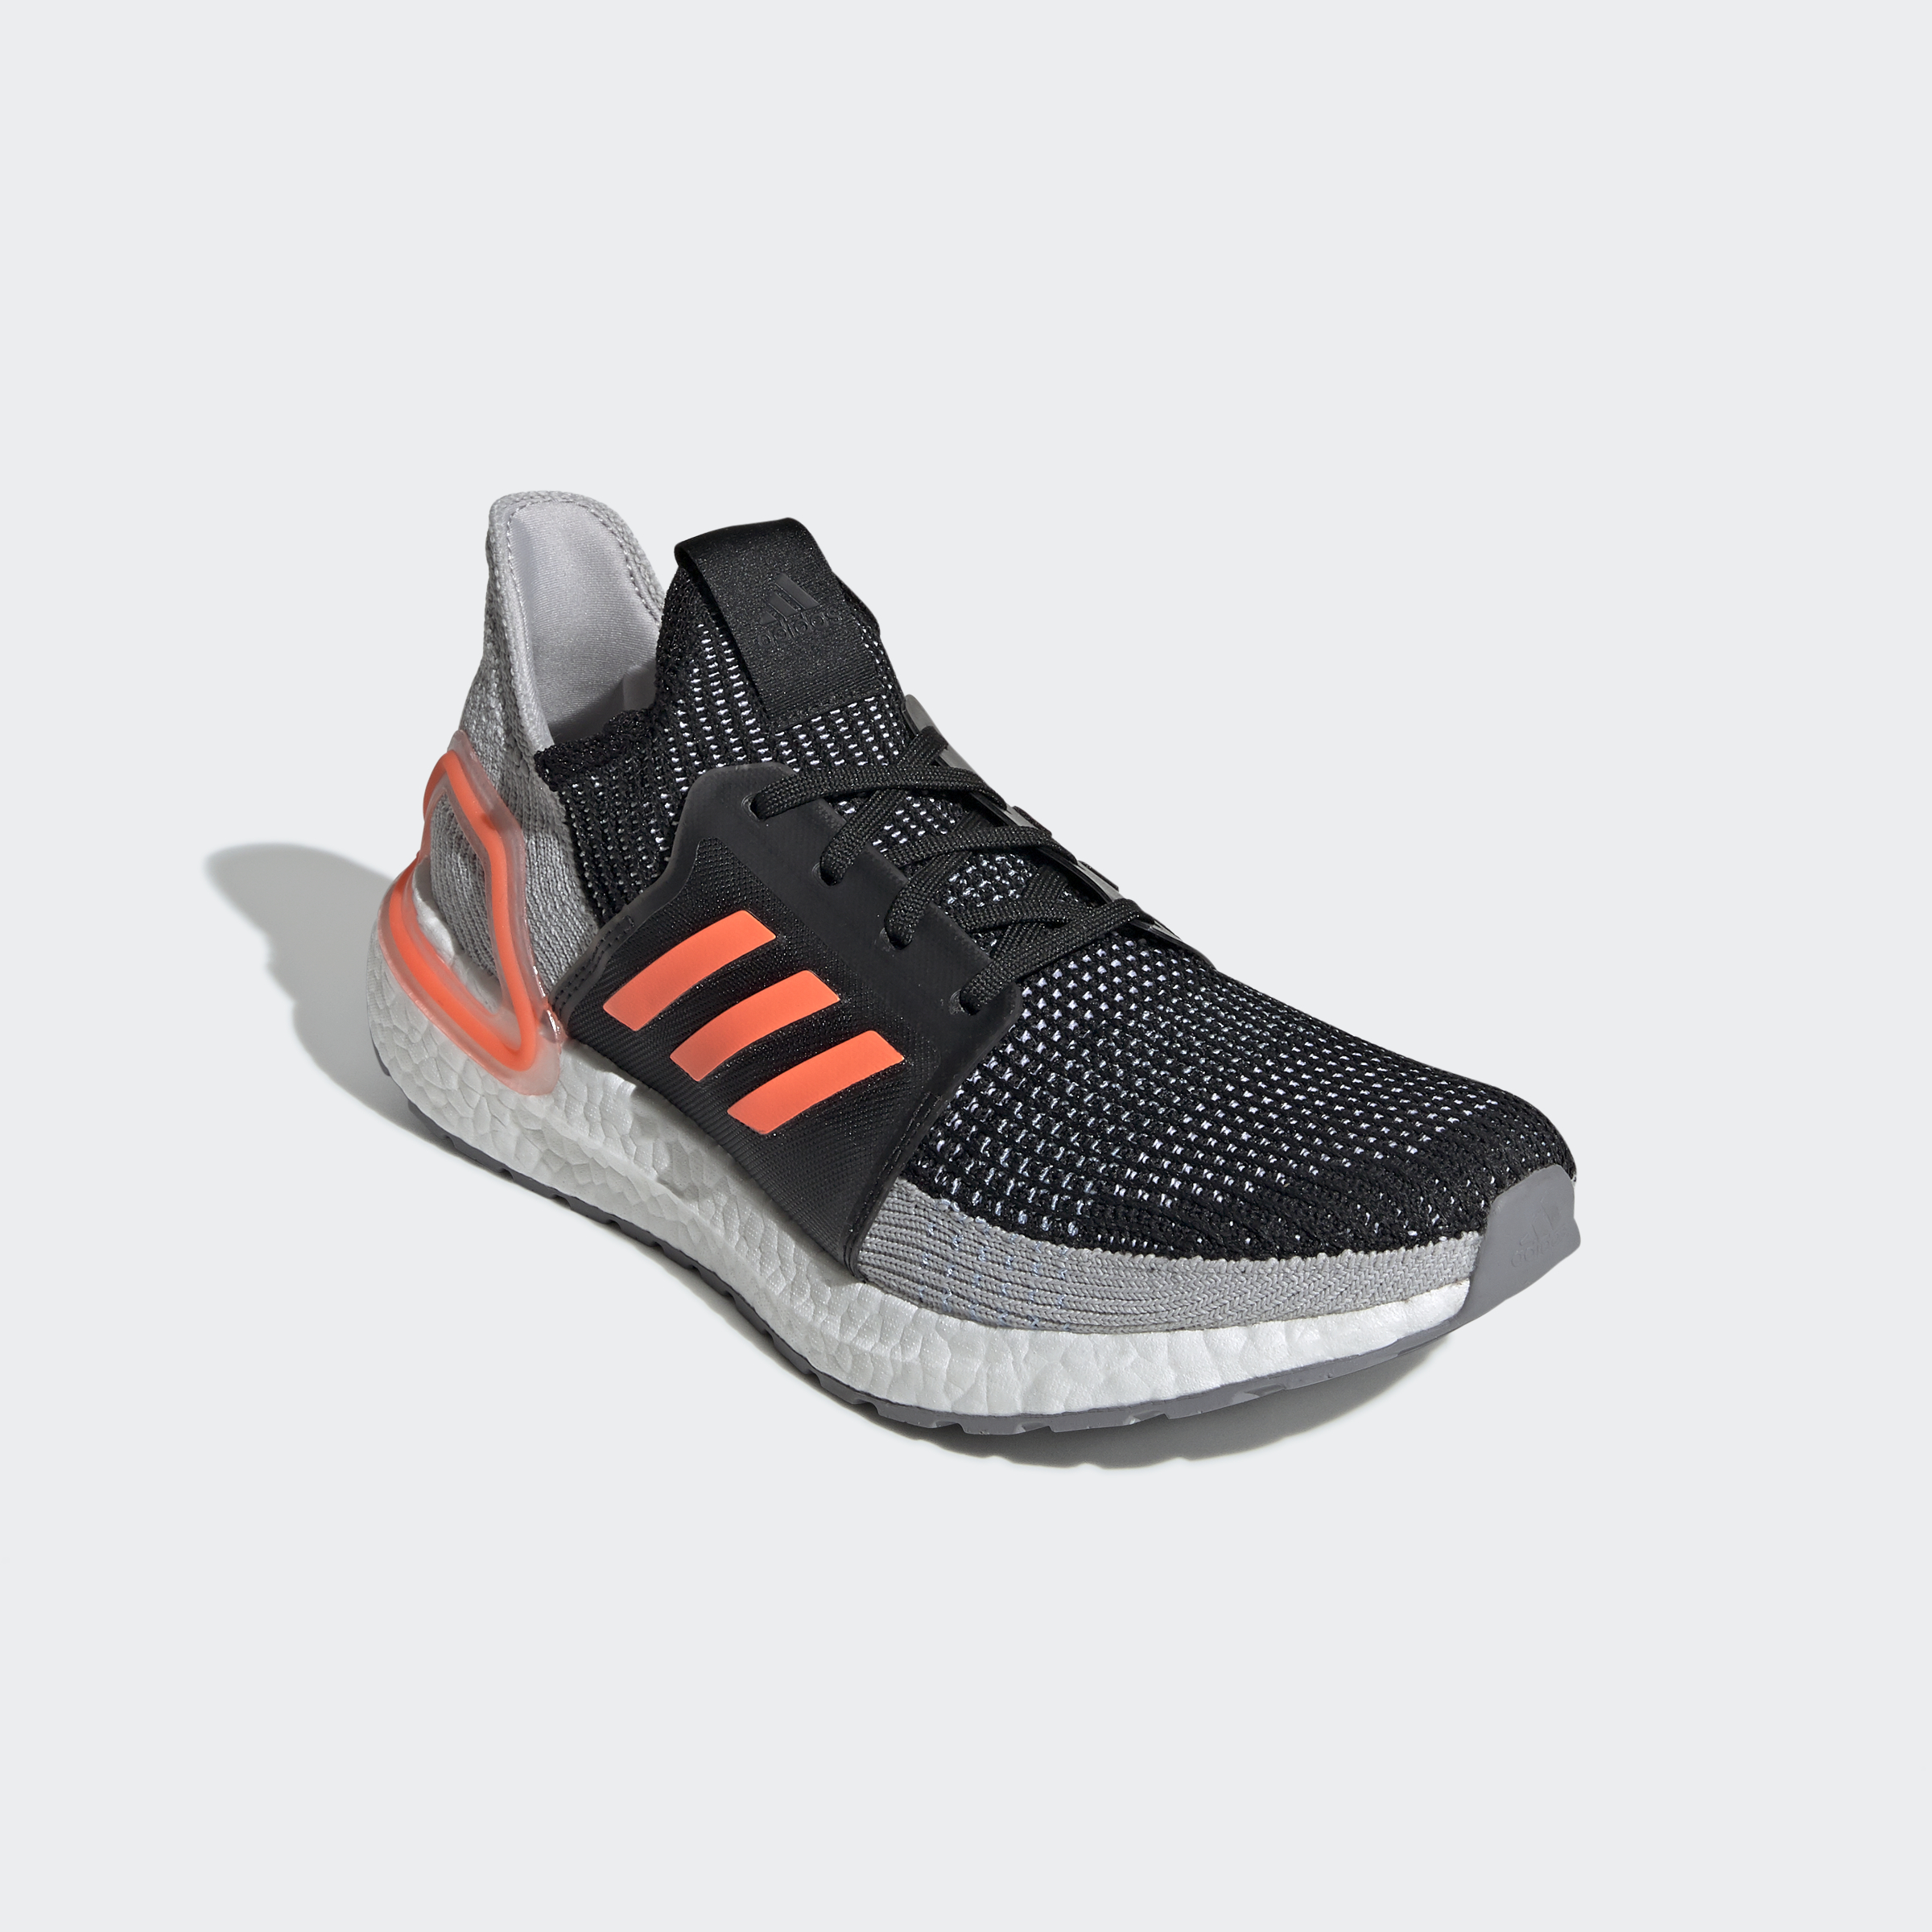 adidas-Ultraboost-19-Shoes-Athletic-amp-Sneakers thumbnail 122